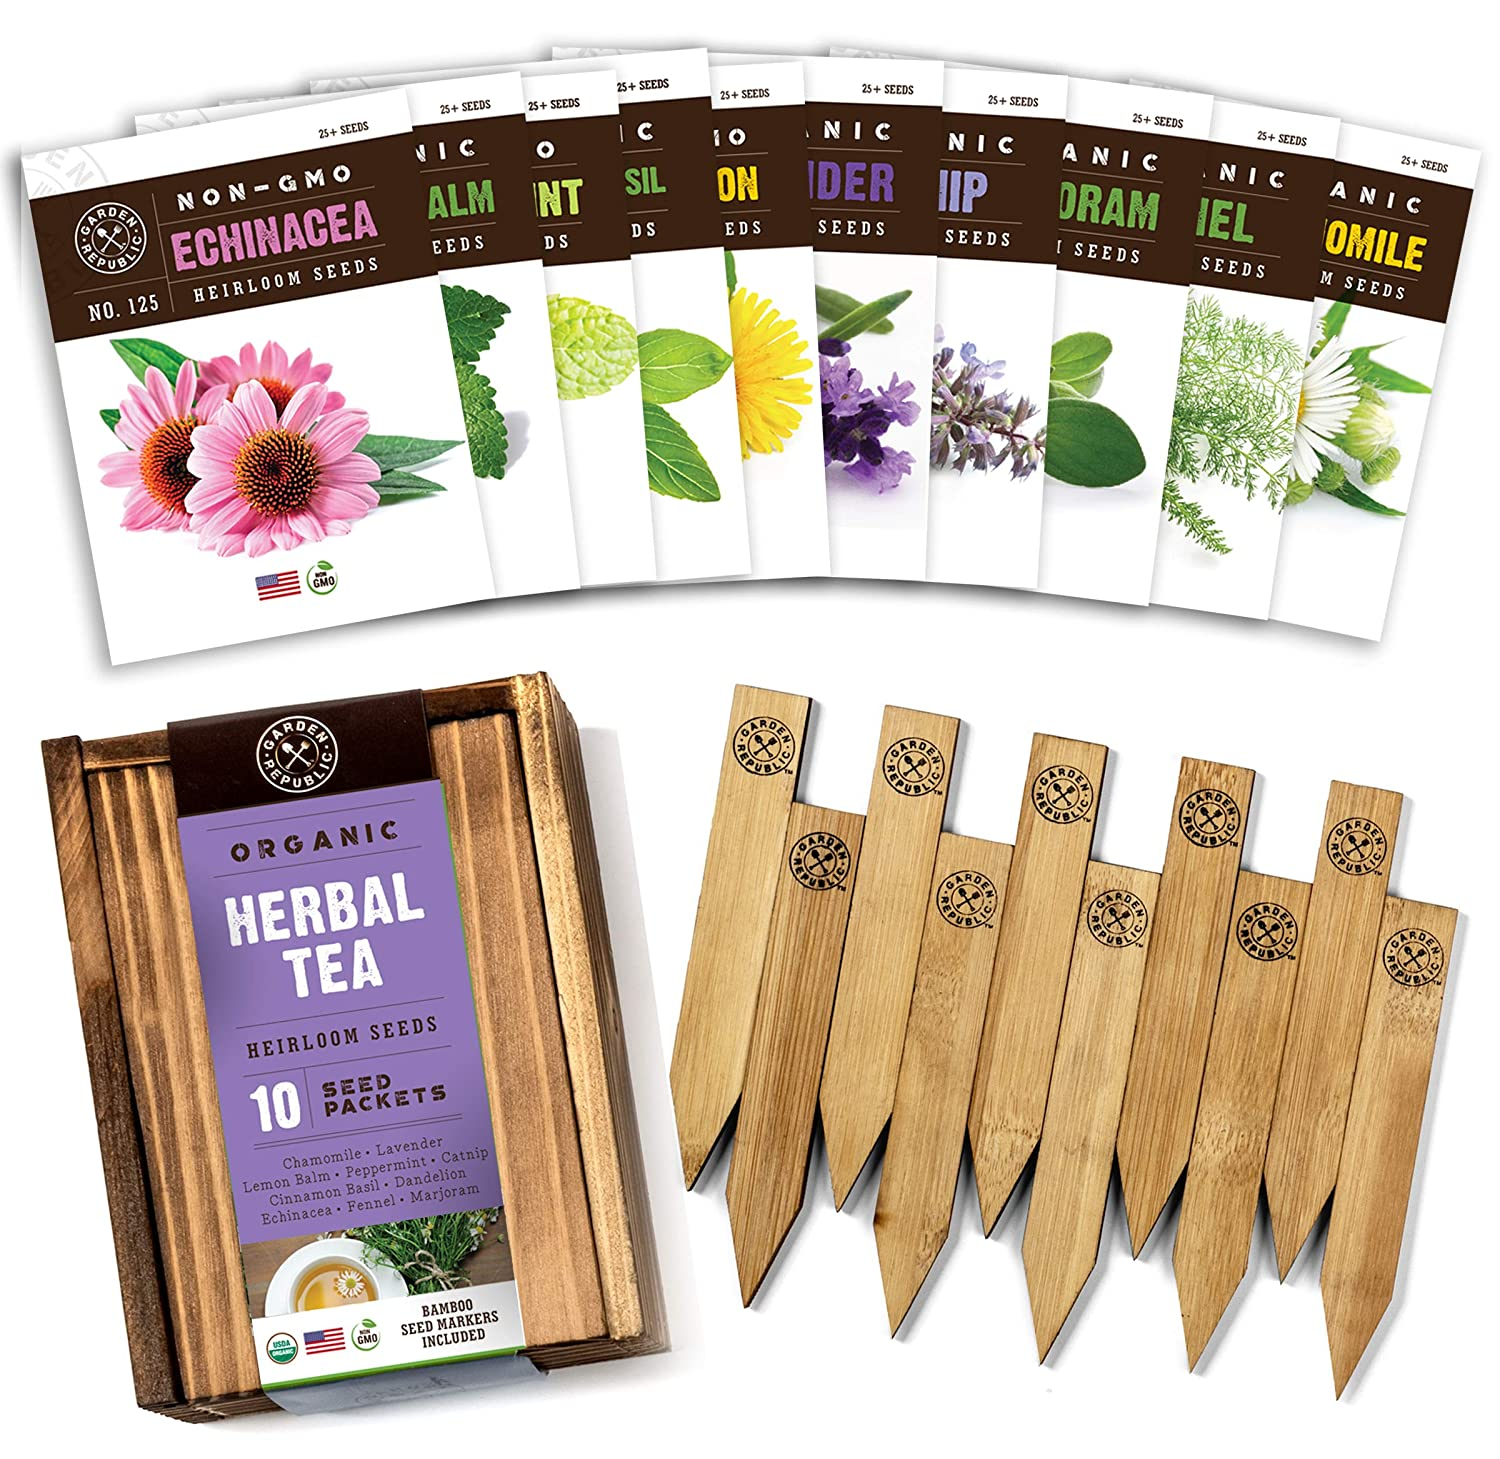 Herb Garden Seeds for Planting - 10 Medicinal Herbs Seed Packets USDA Organic Non GMO, Wood Gift Box Plant Markers eBook - Herbal Tea Gifts for Tea Lovers, Herb Growing Kit Indoor Garden Starter Kit